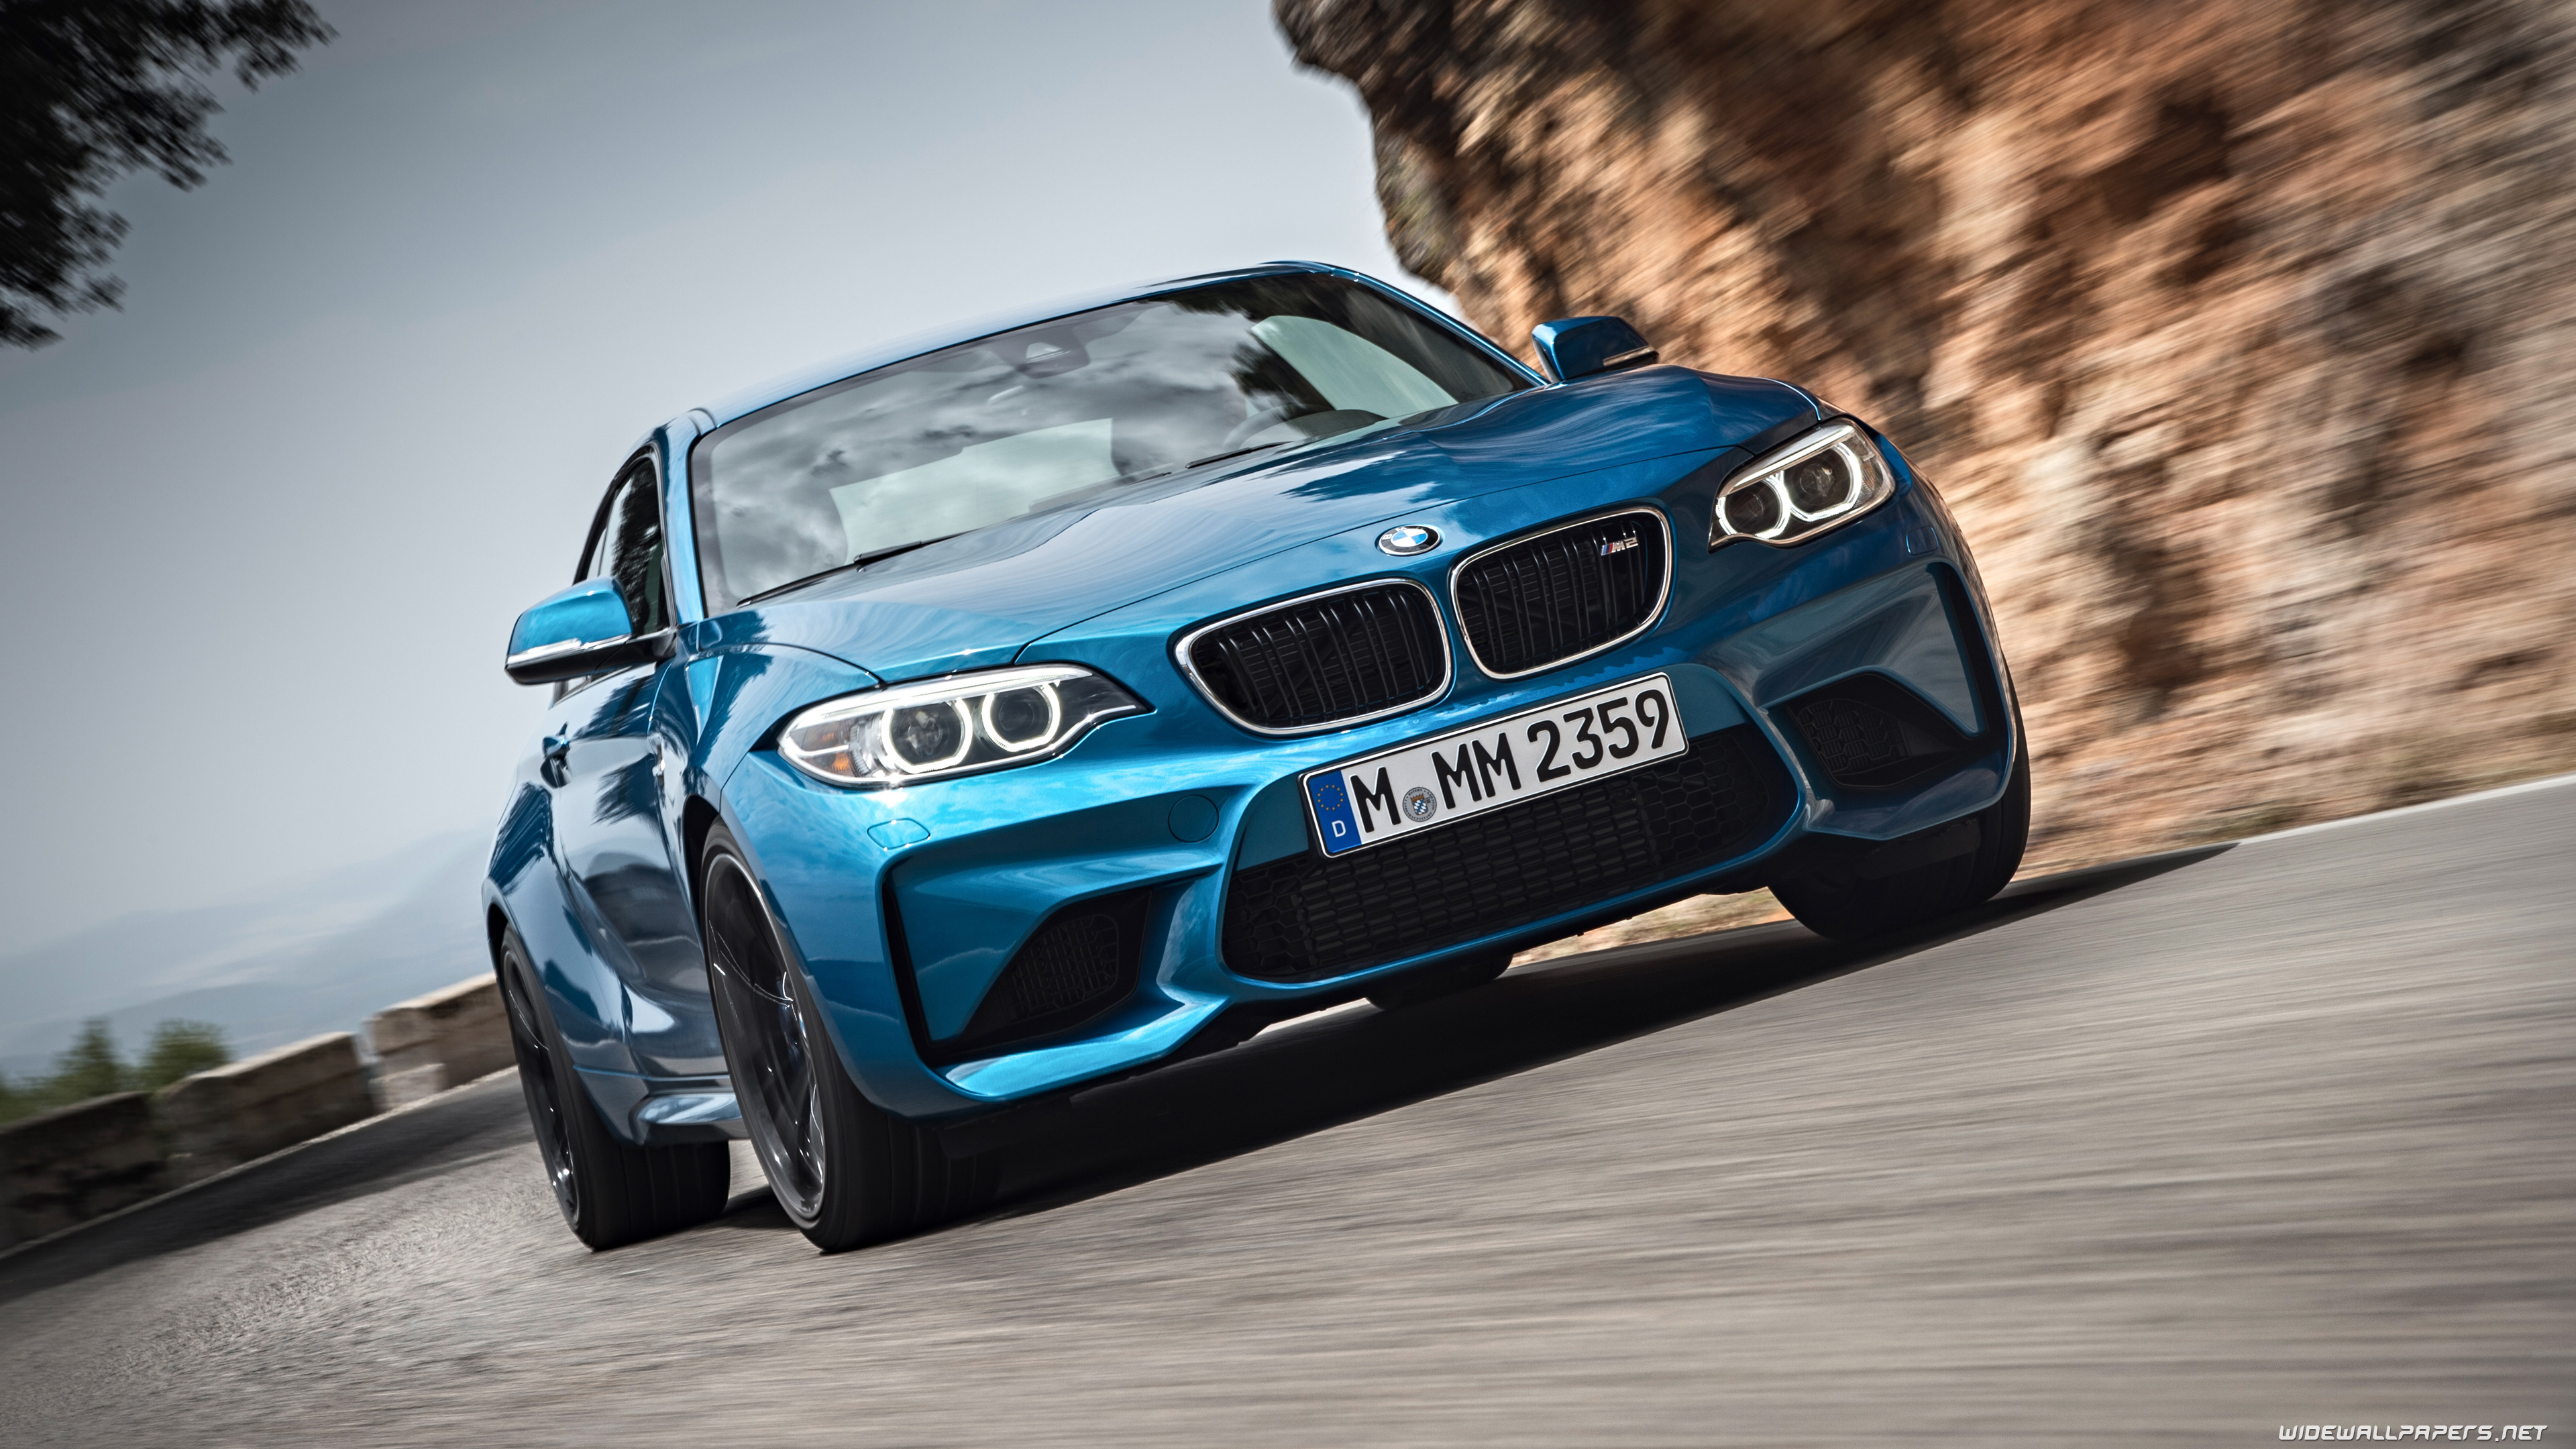 3840x2160 - BMW M2 Coupe Wallpapers 8